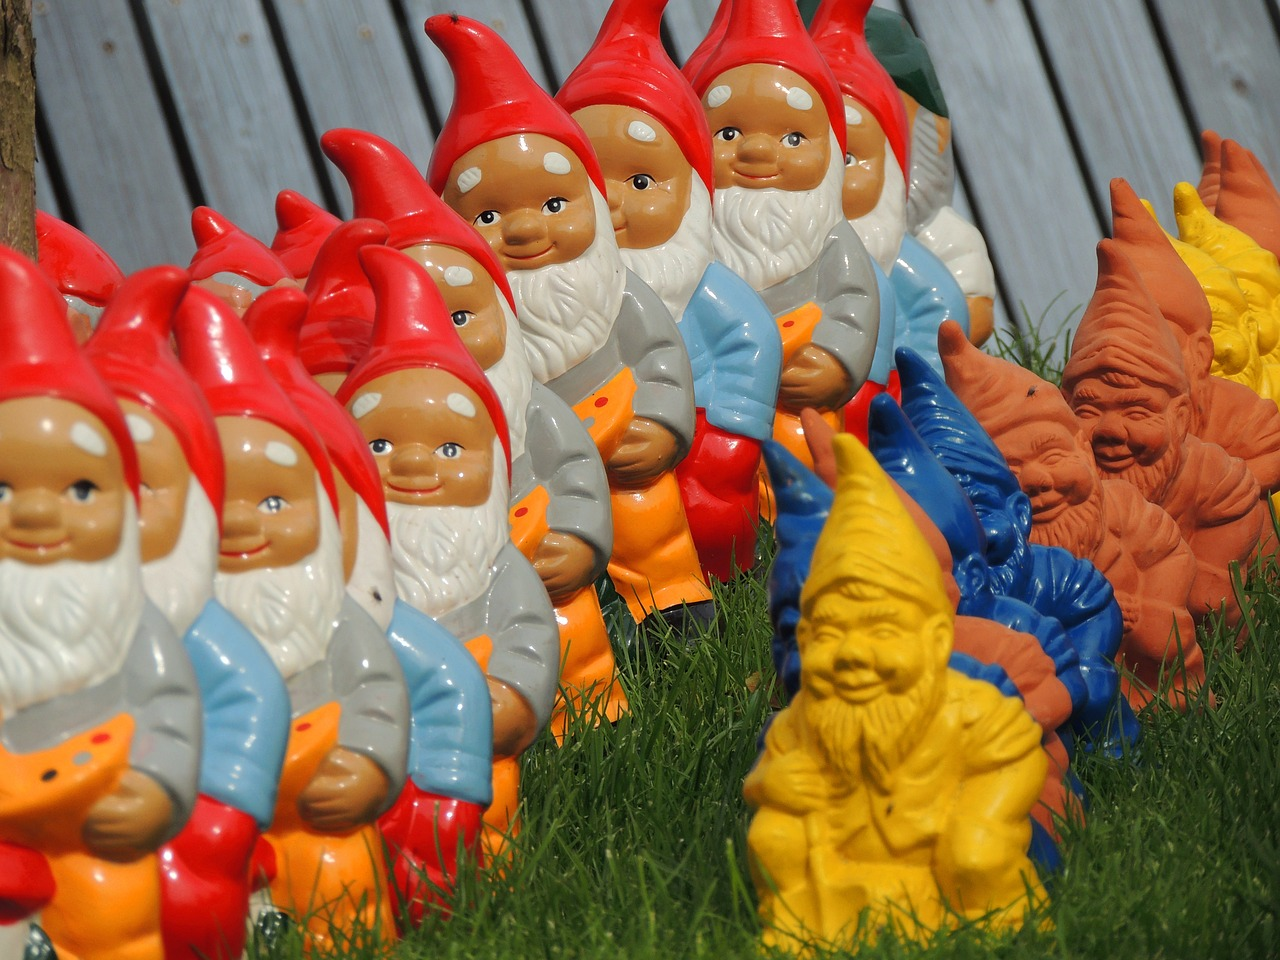 dwarfs imp garden gnome free photo